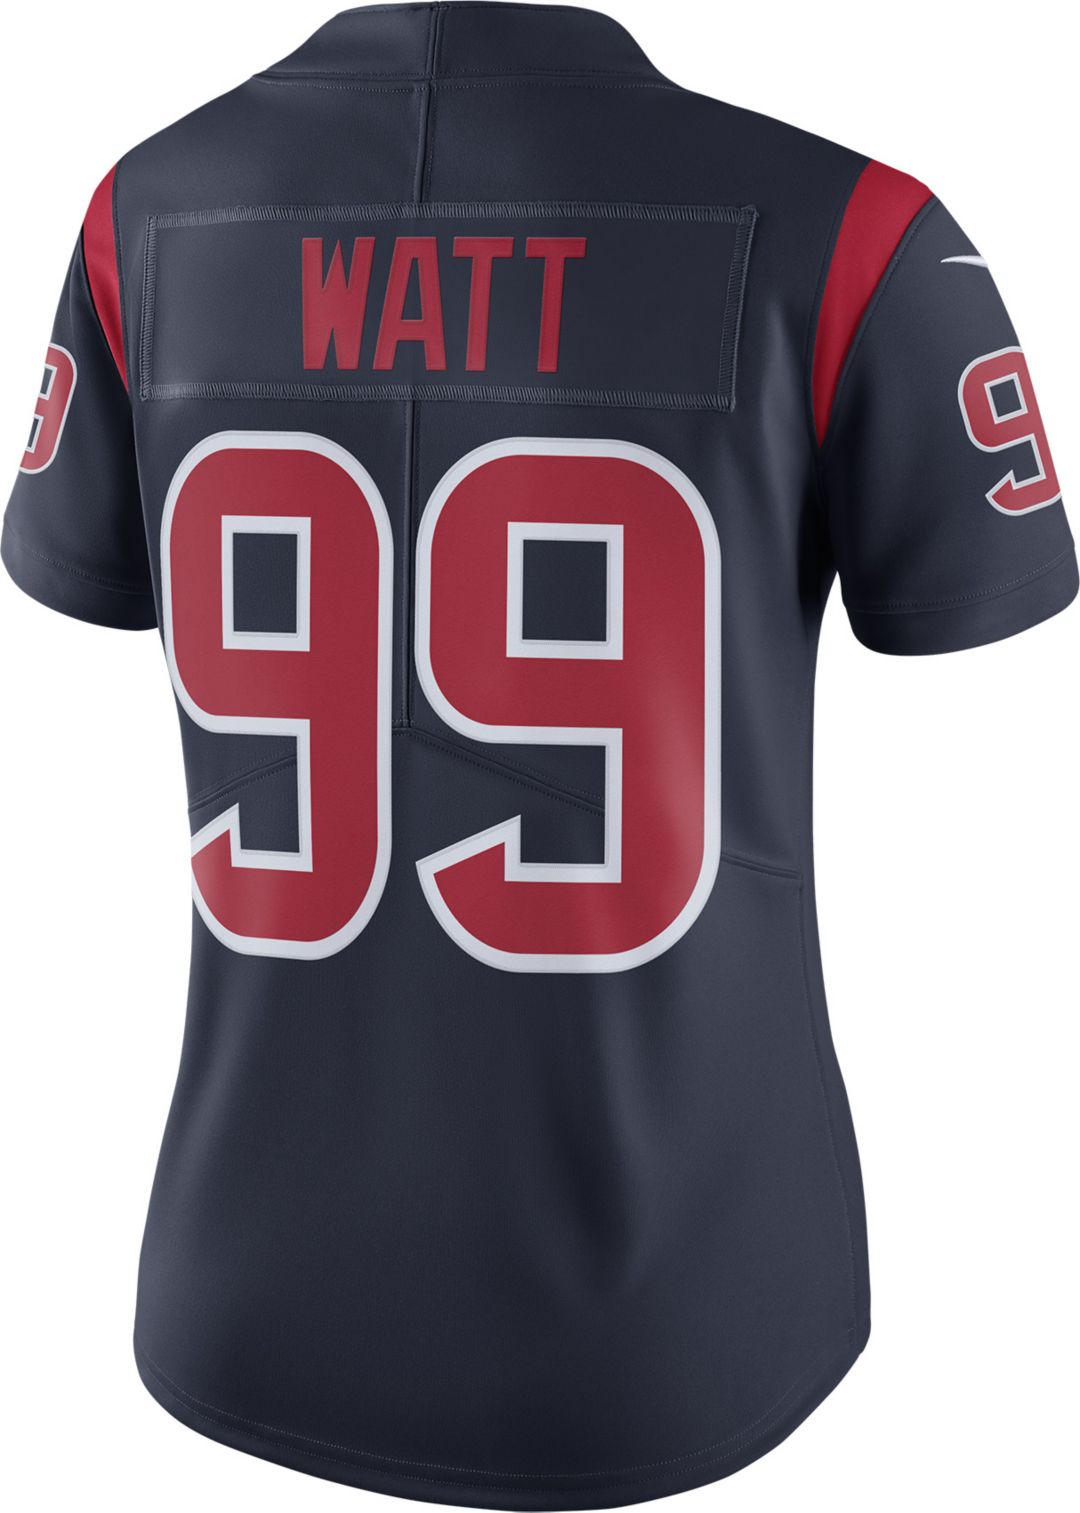 quality design 136a8 f3a25 Nike Women's Color Rush Limited Jersey Houston Texans J.J. Watt #99